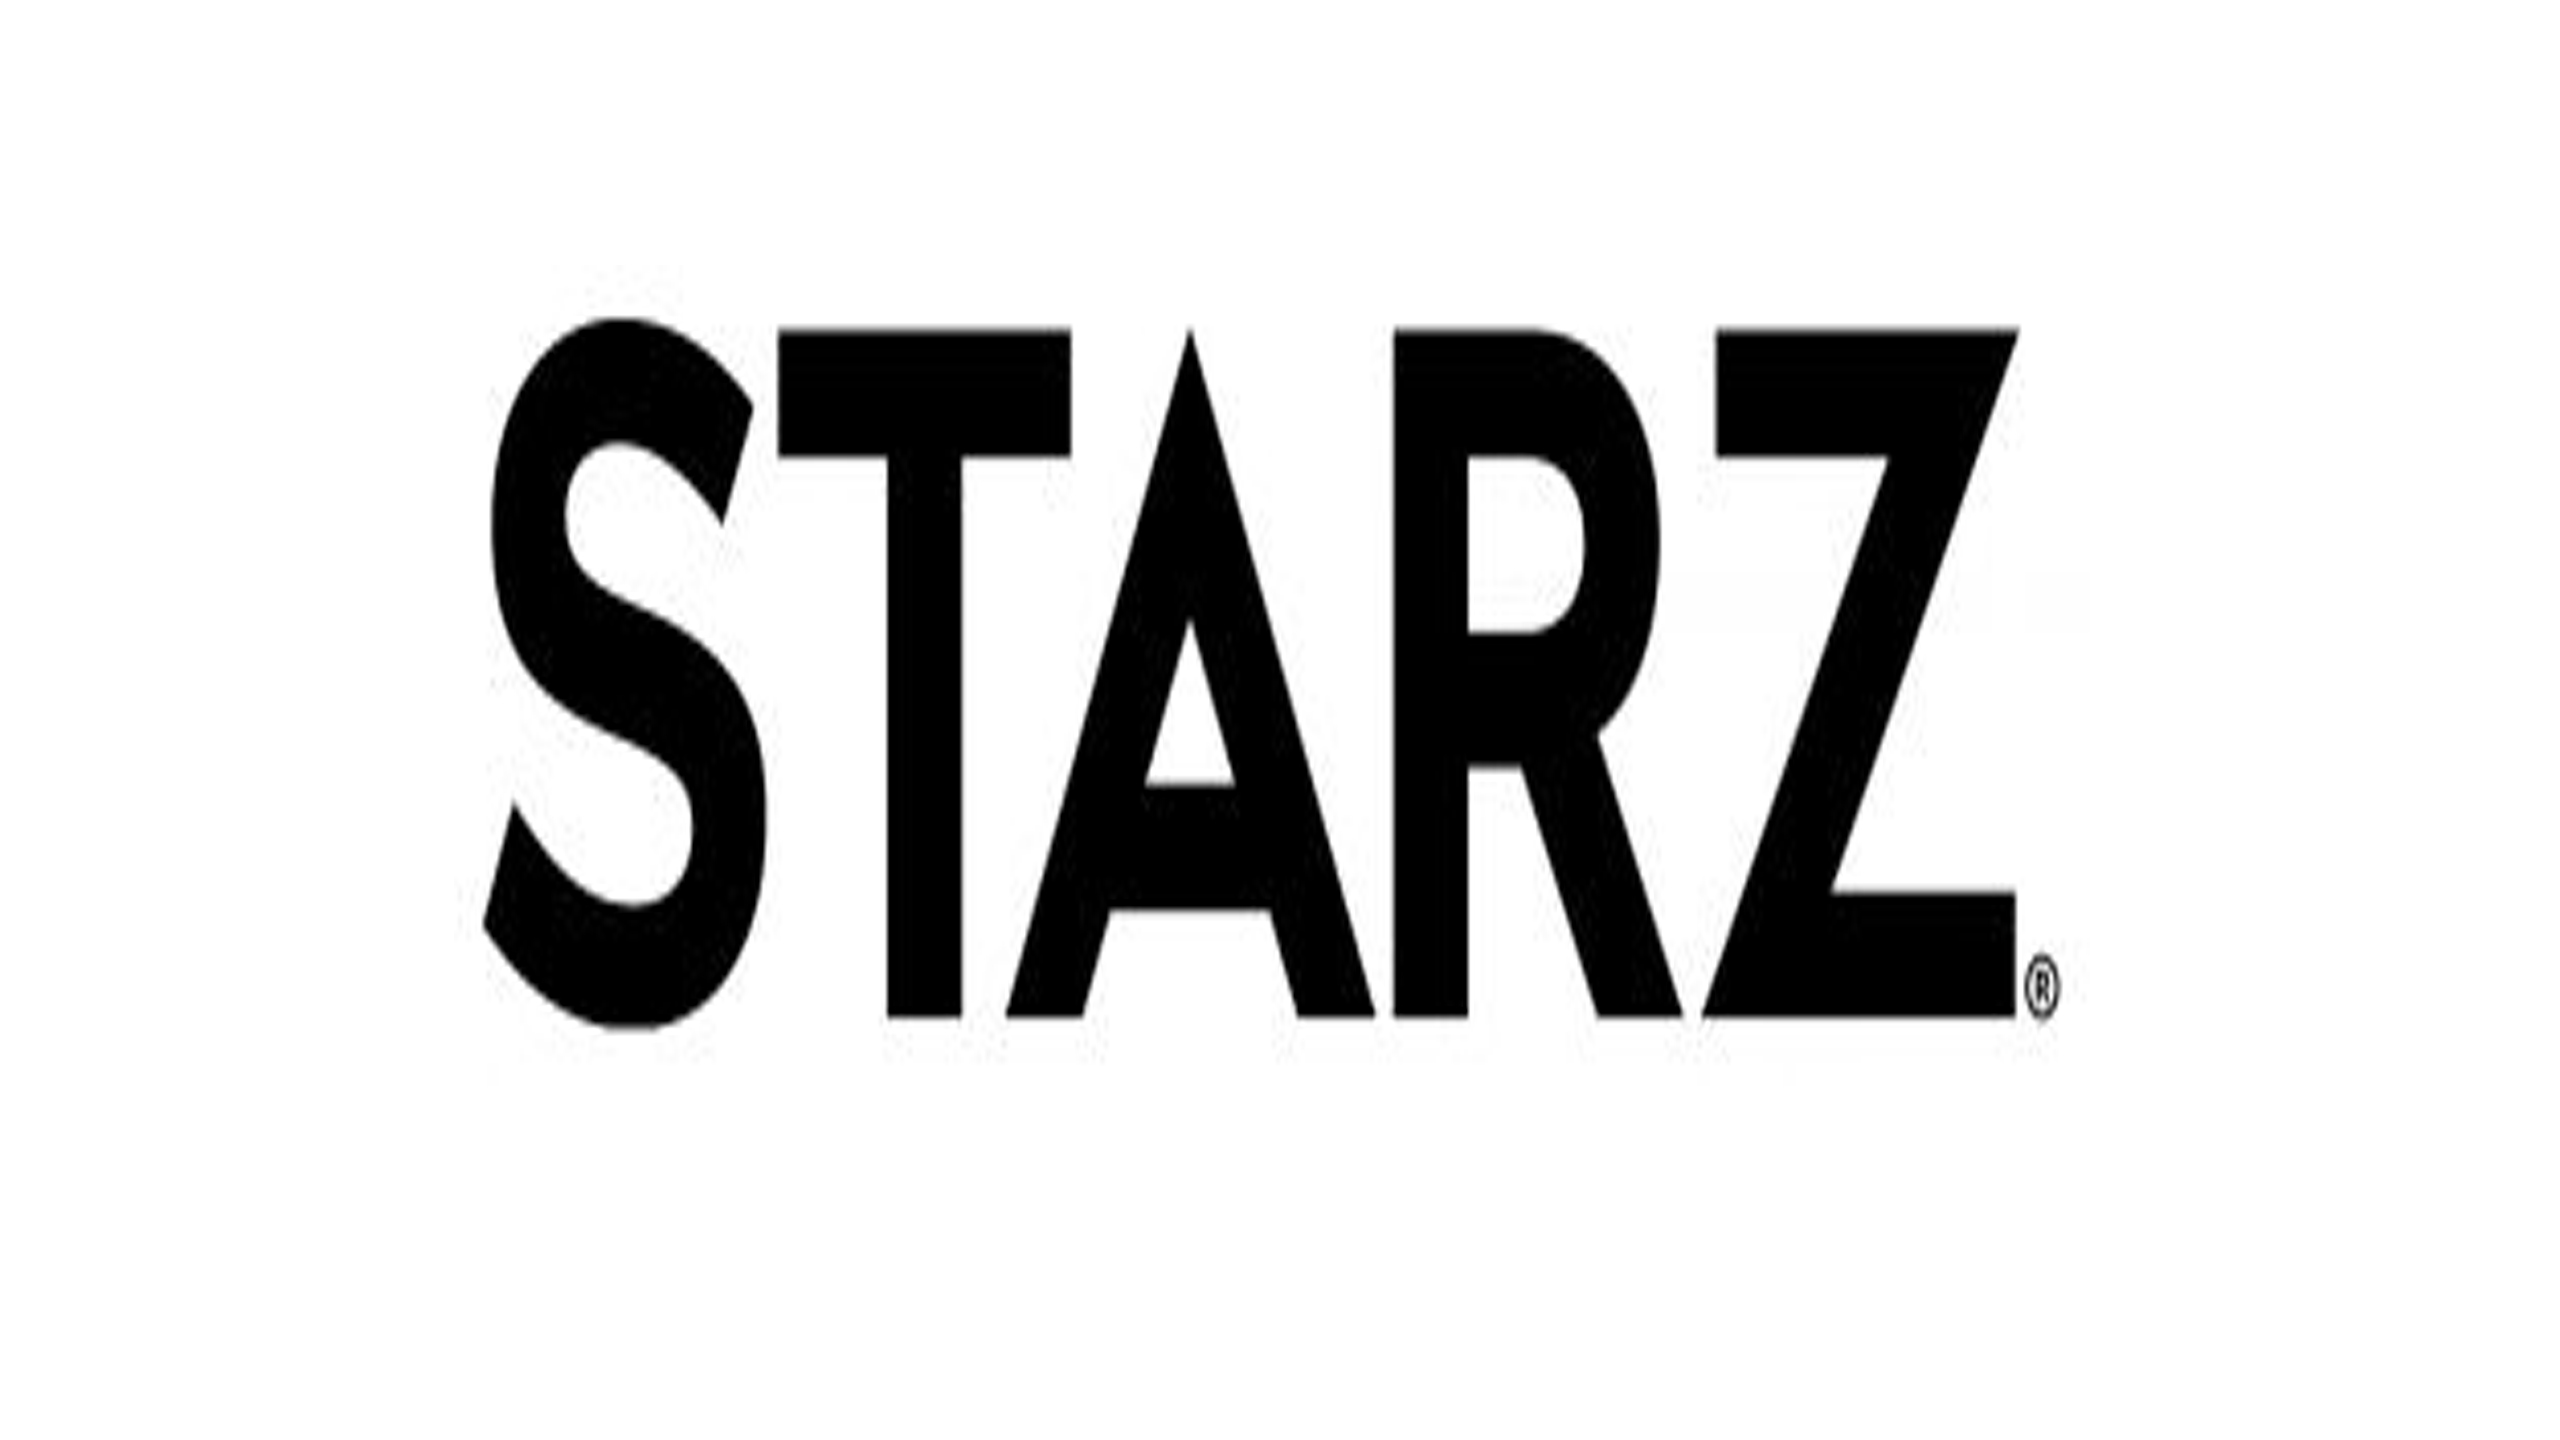 Starz featured image